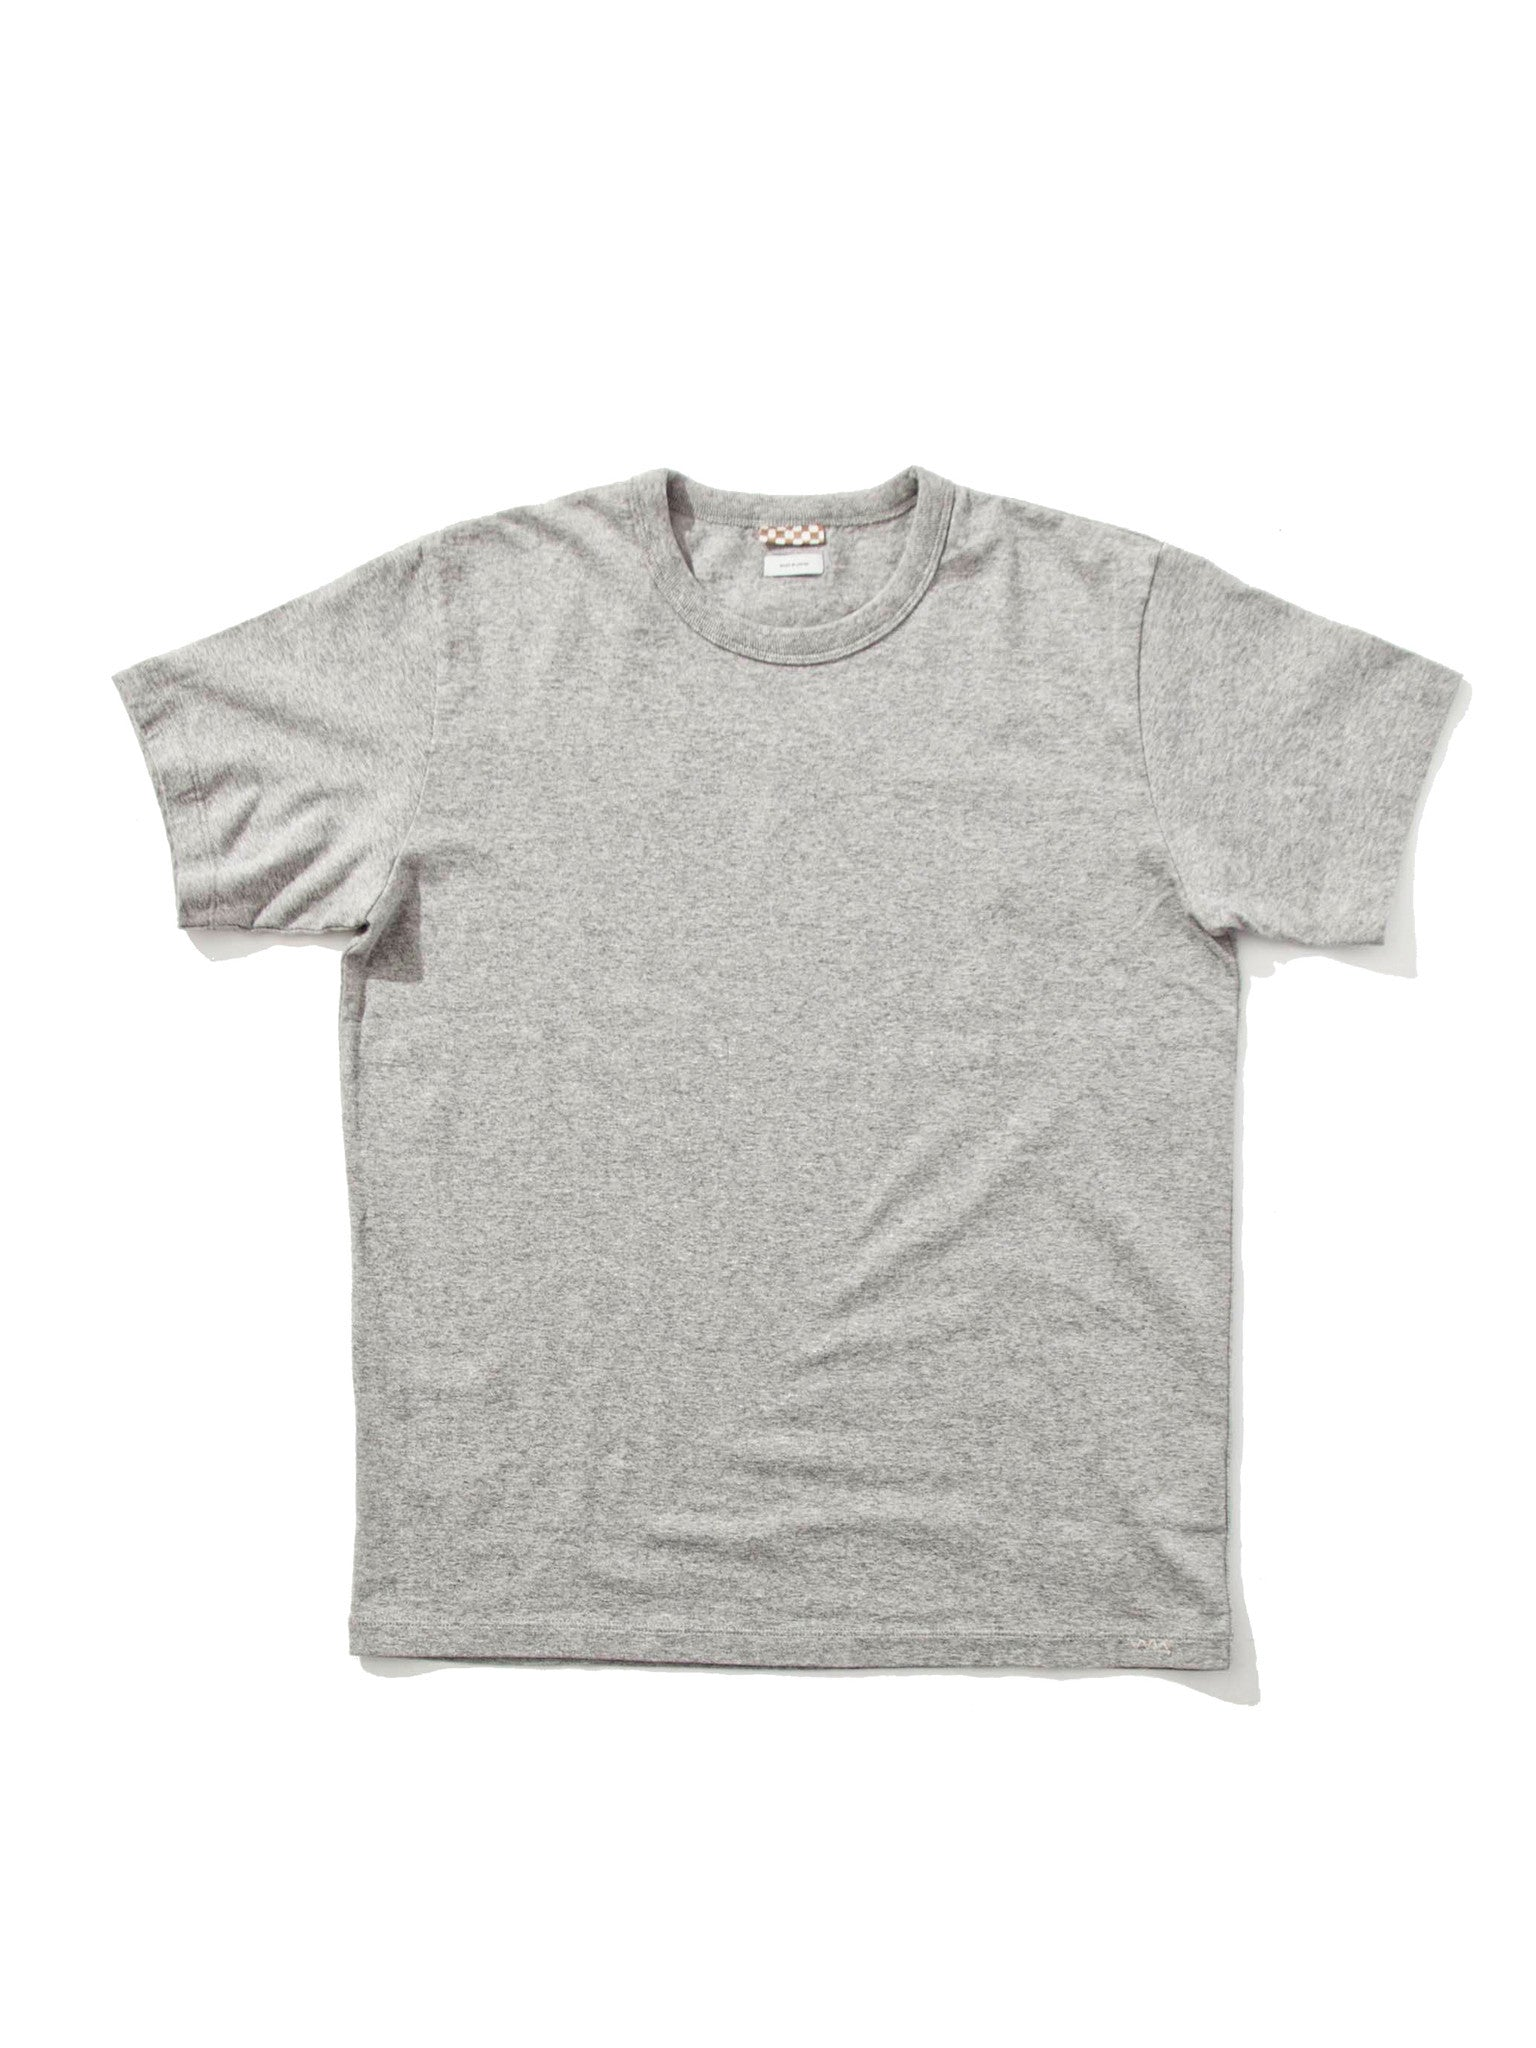 Grey Sublig Crew 3-Pack S/S (WIDE) 4